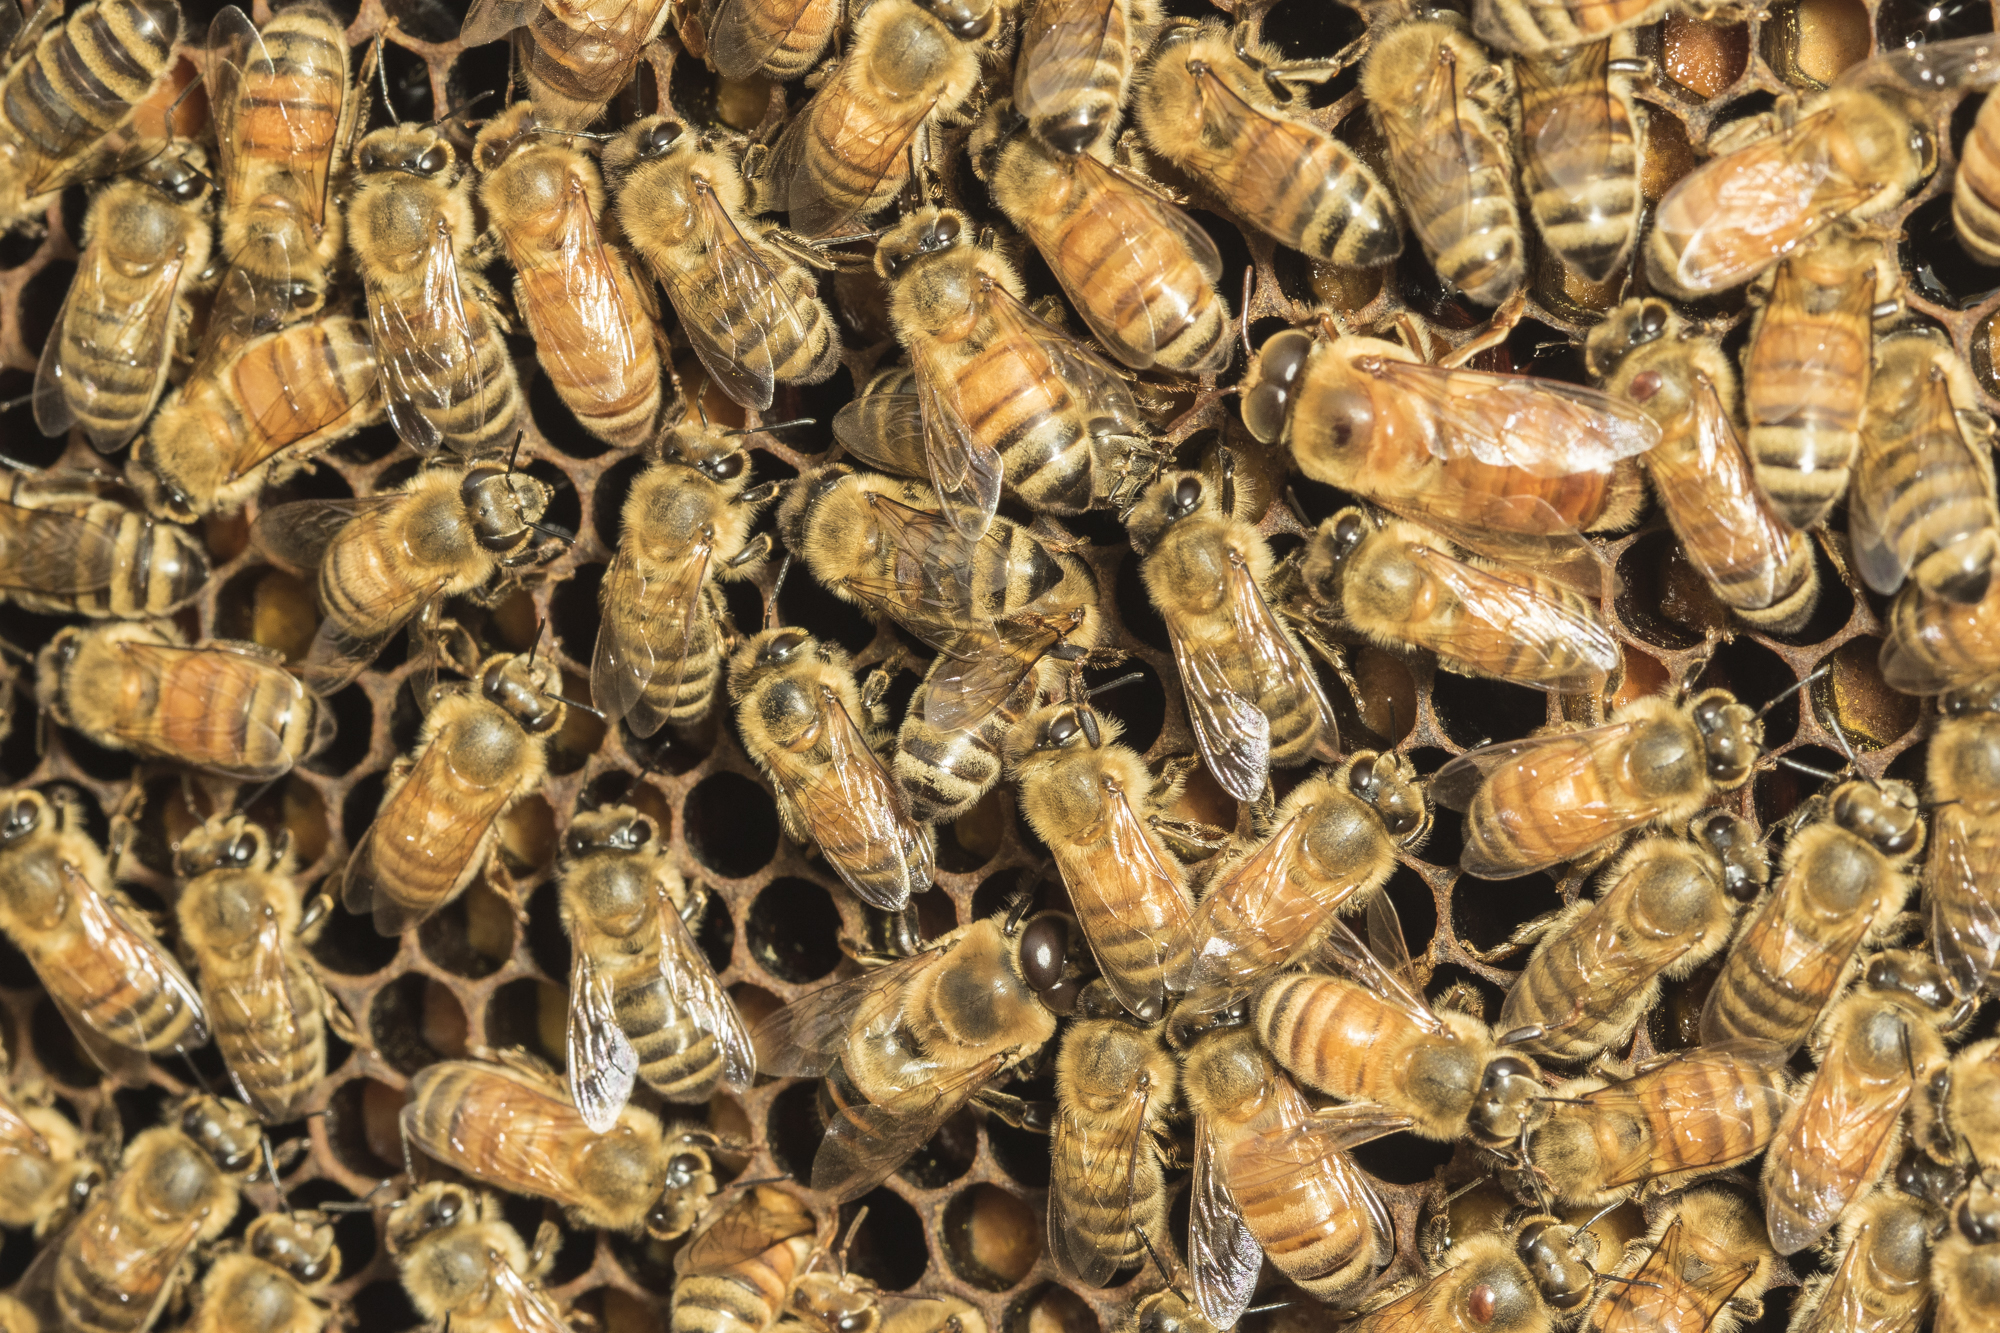 honeybees from CCCG hive